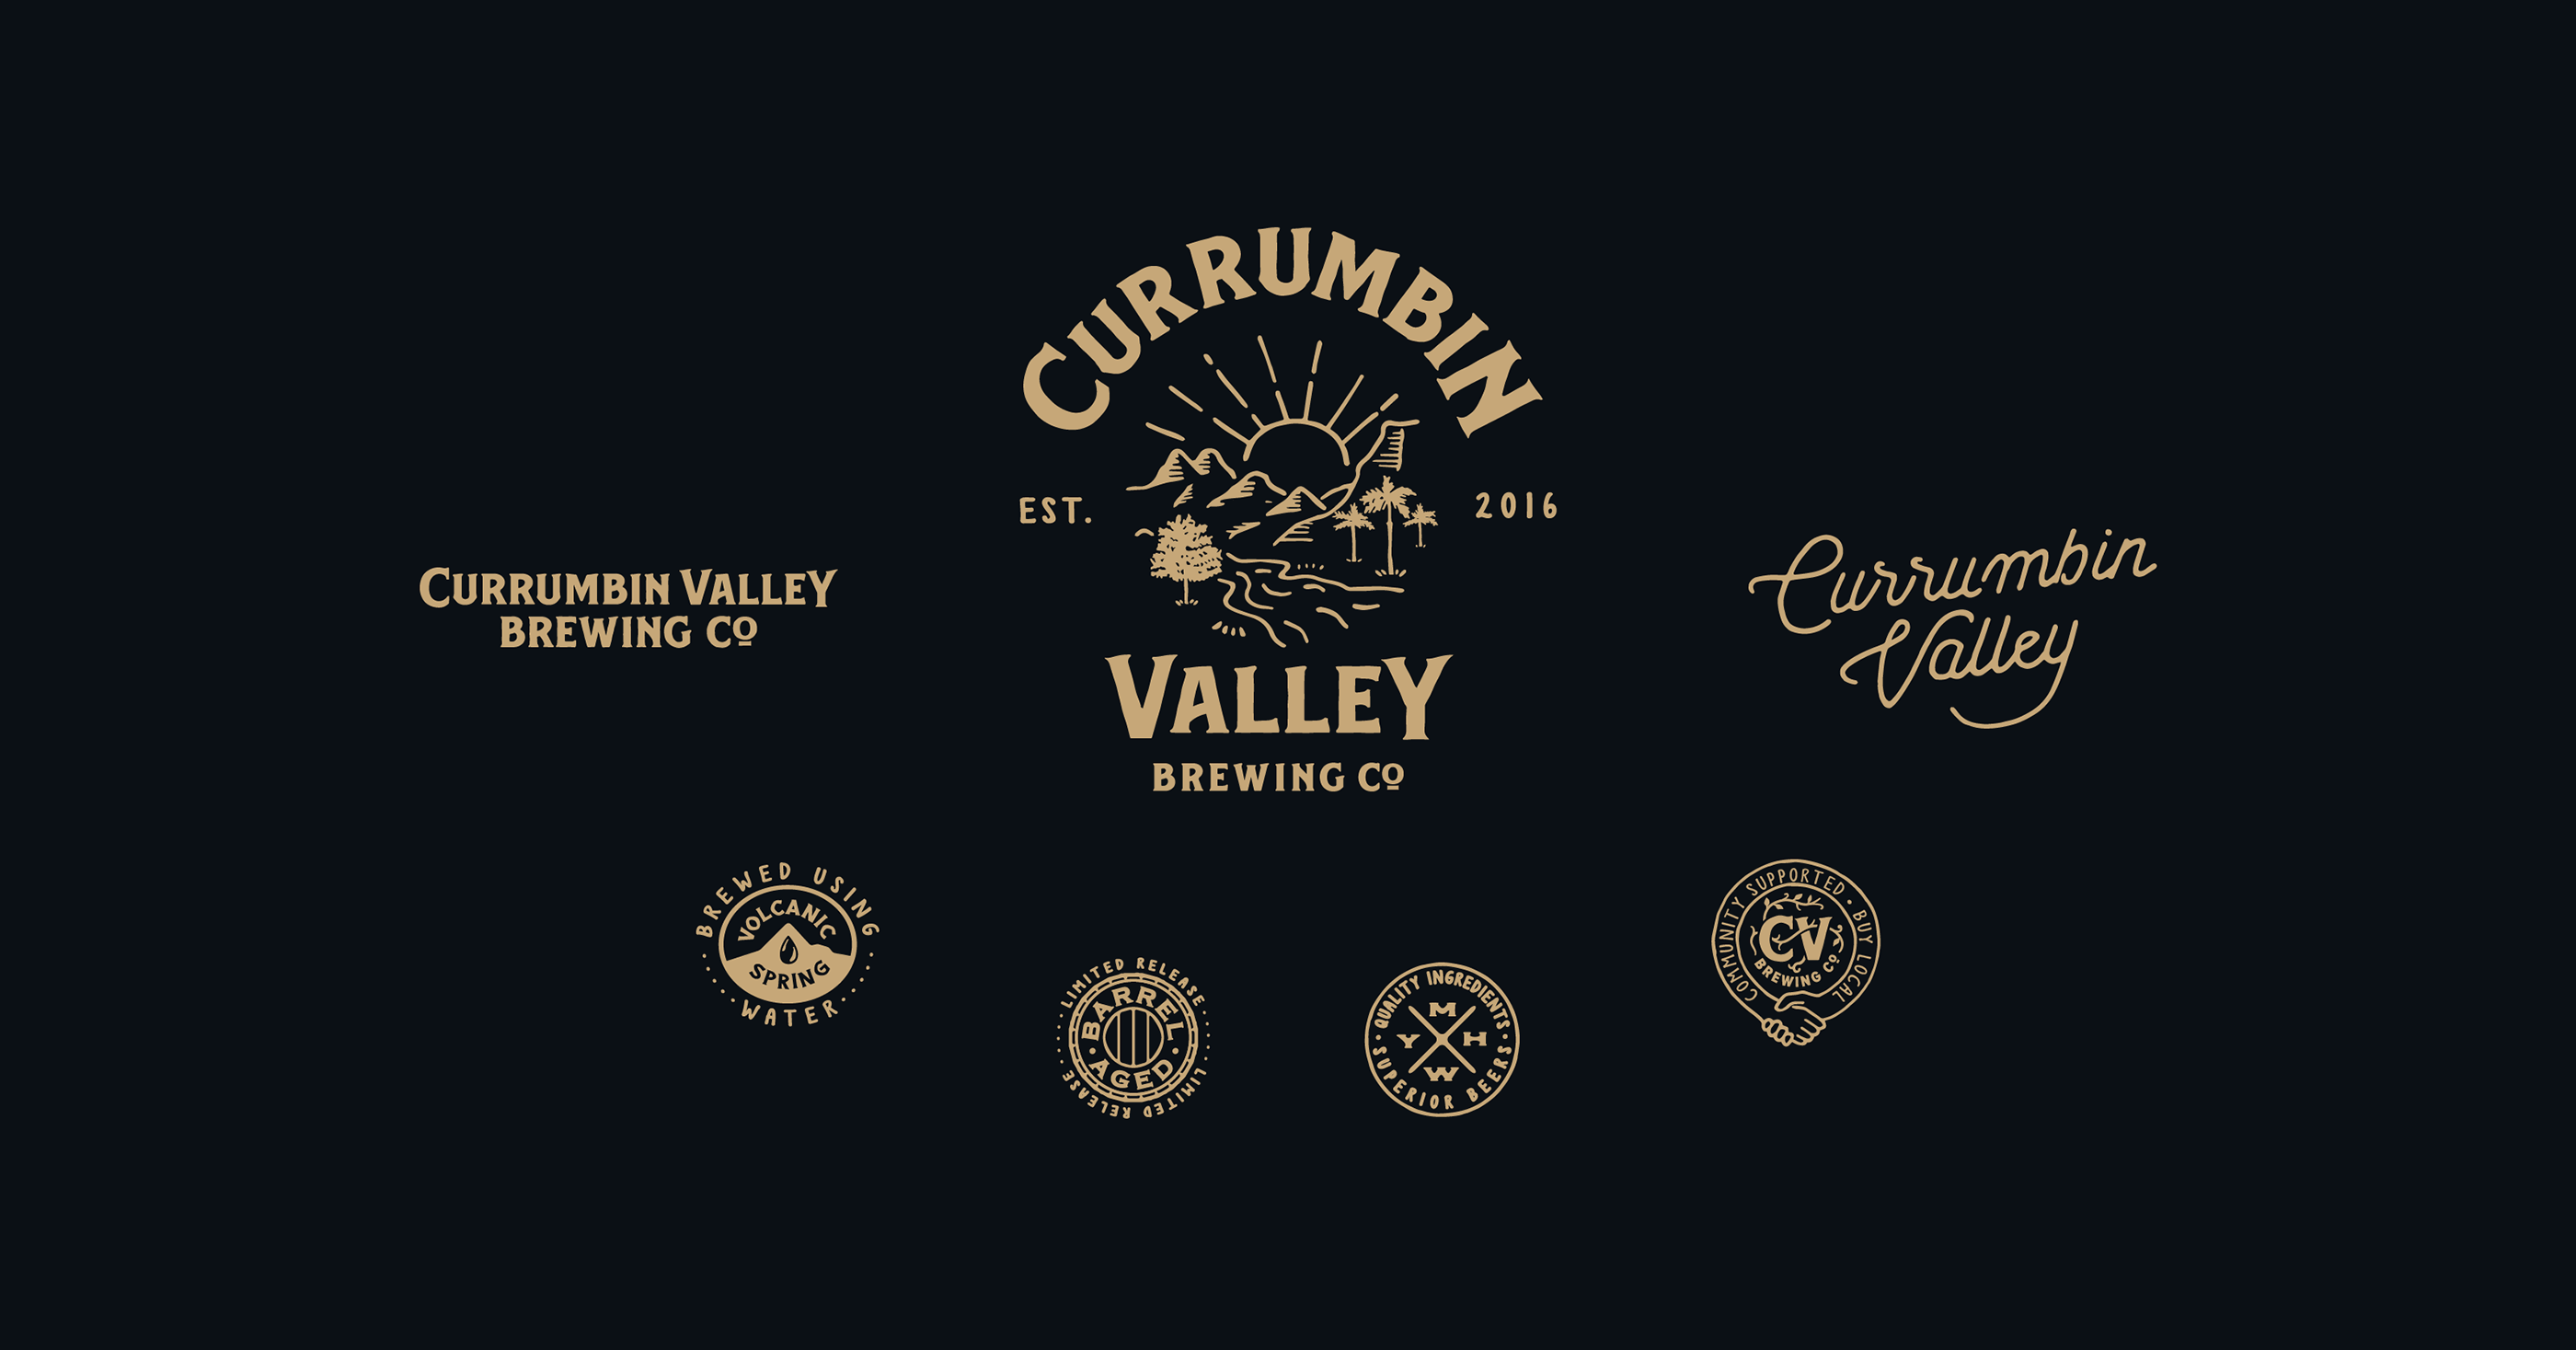 Behance Search Brewing Brewing Co Beer Brewing